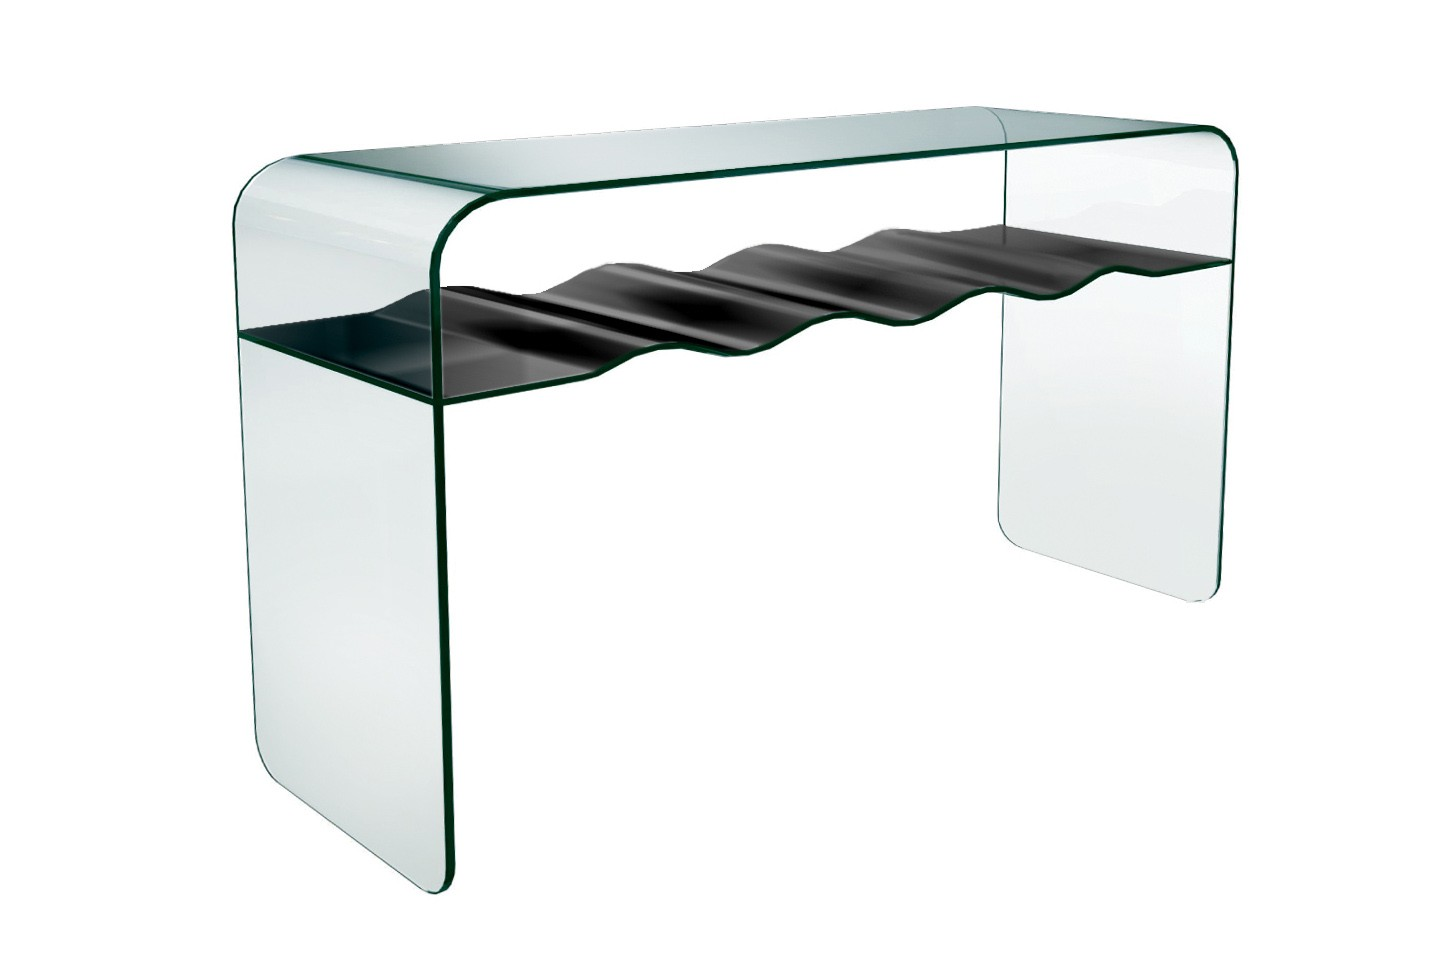 Photo of Greenapple lychee ripple black shelf glass console table